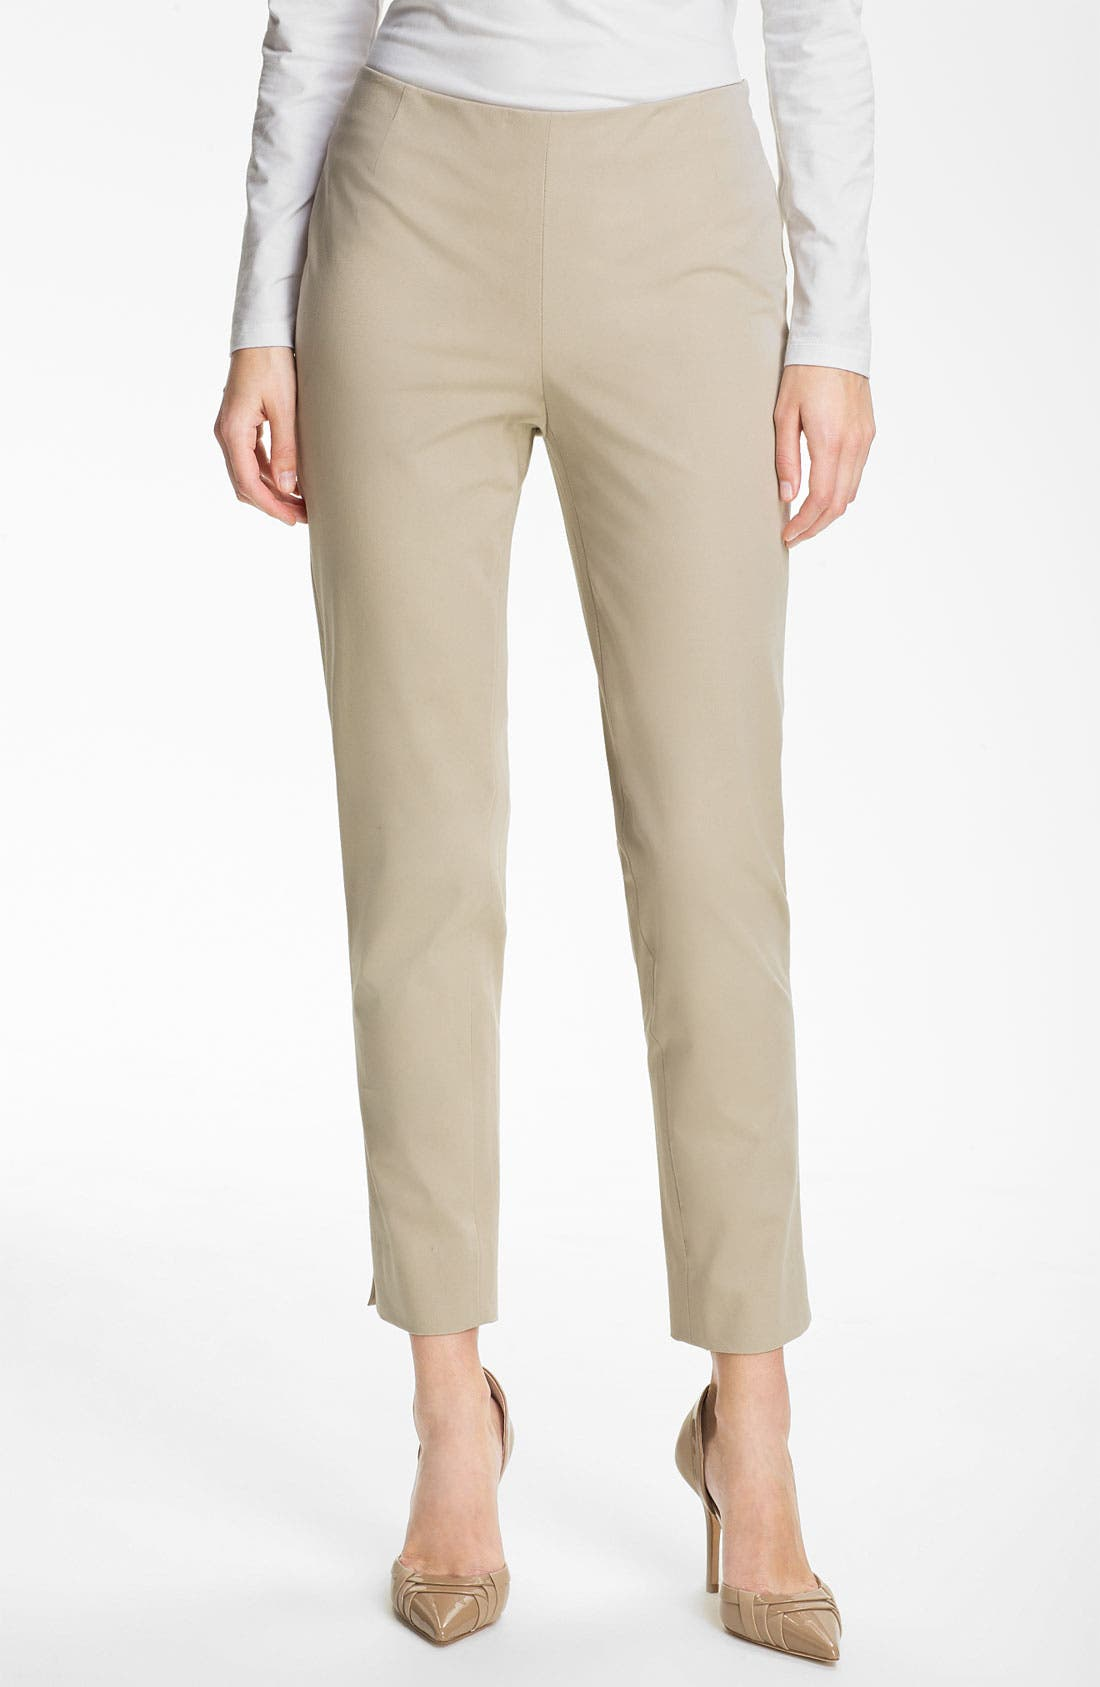 Alternate Image 1 Selected - Lafayette 148 New York 'Bleecker' Polished Twill Pants